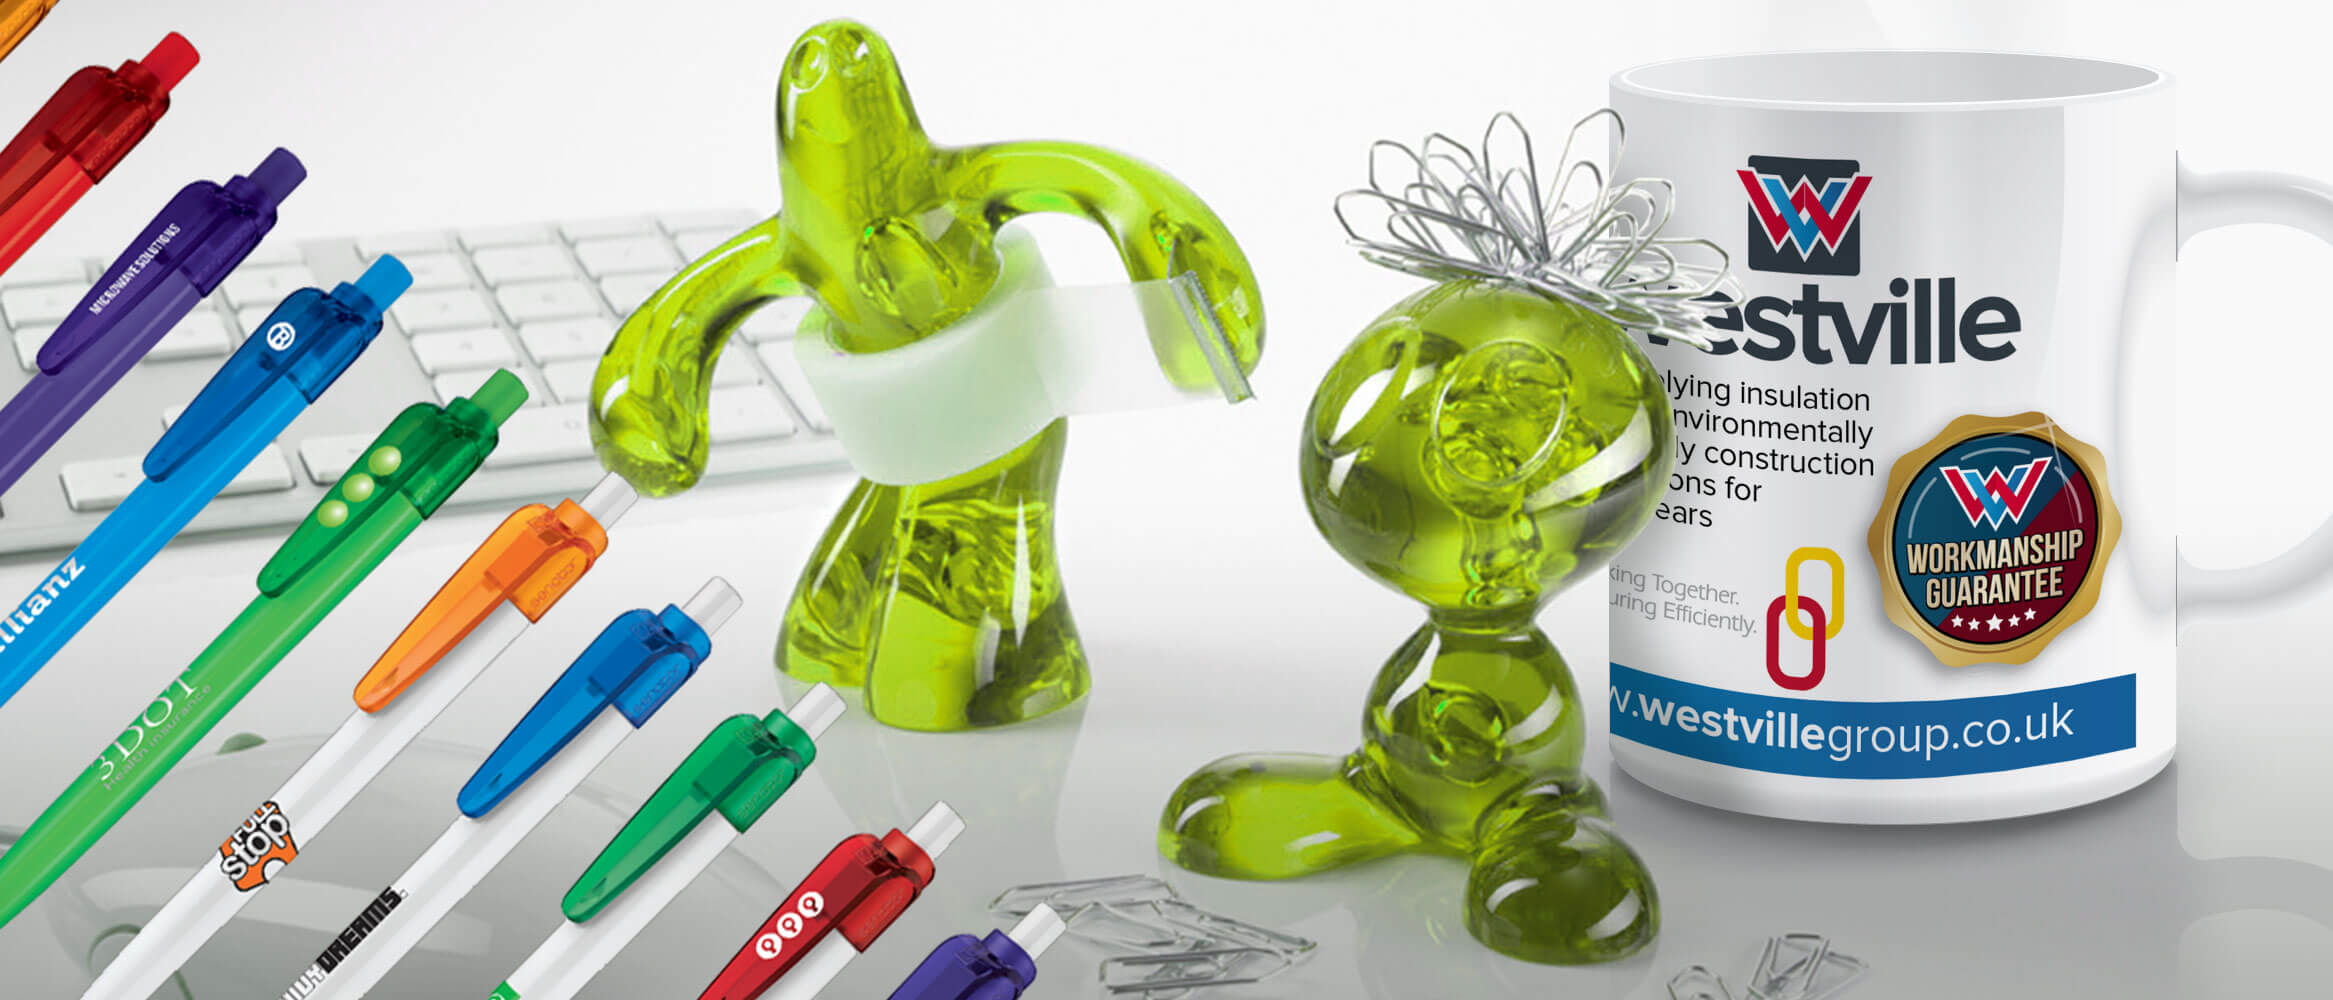 Examples of Various Promotional Merchandise